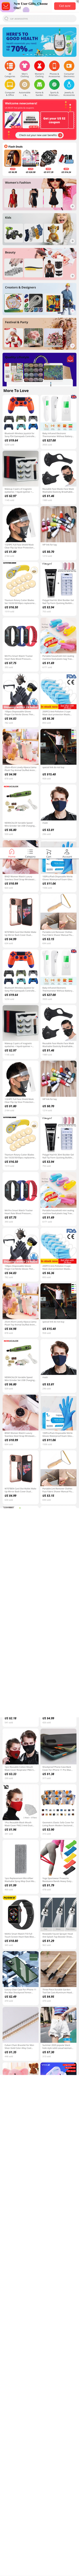 AliExpress by Alibaba.com Coupon